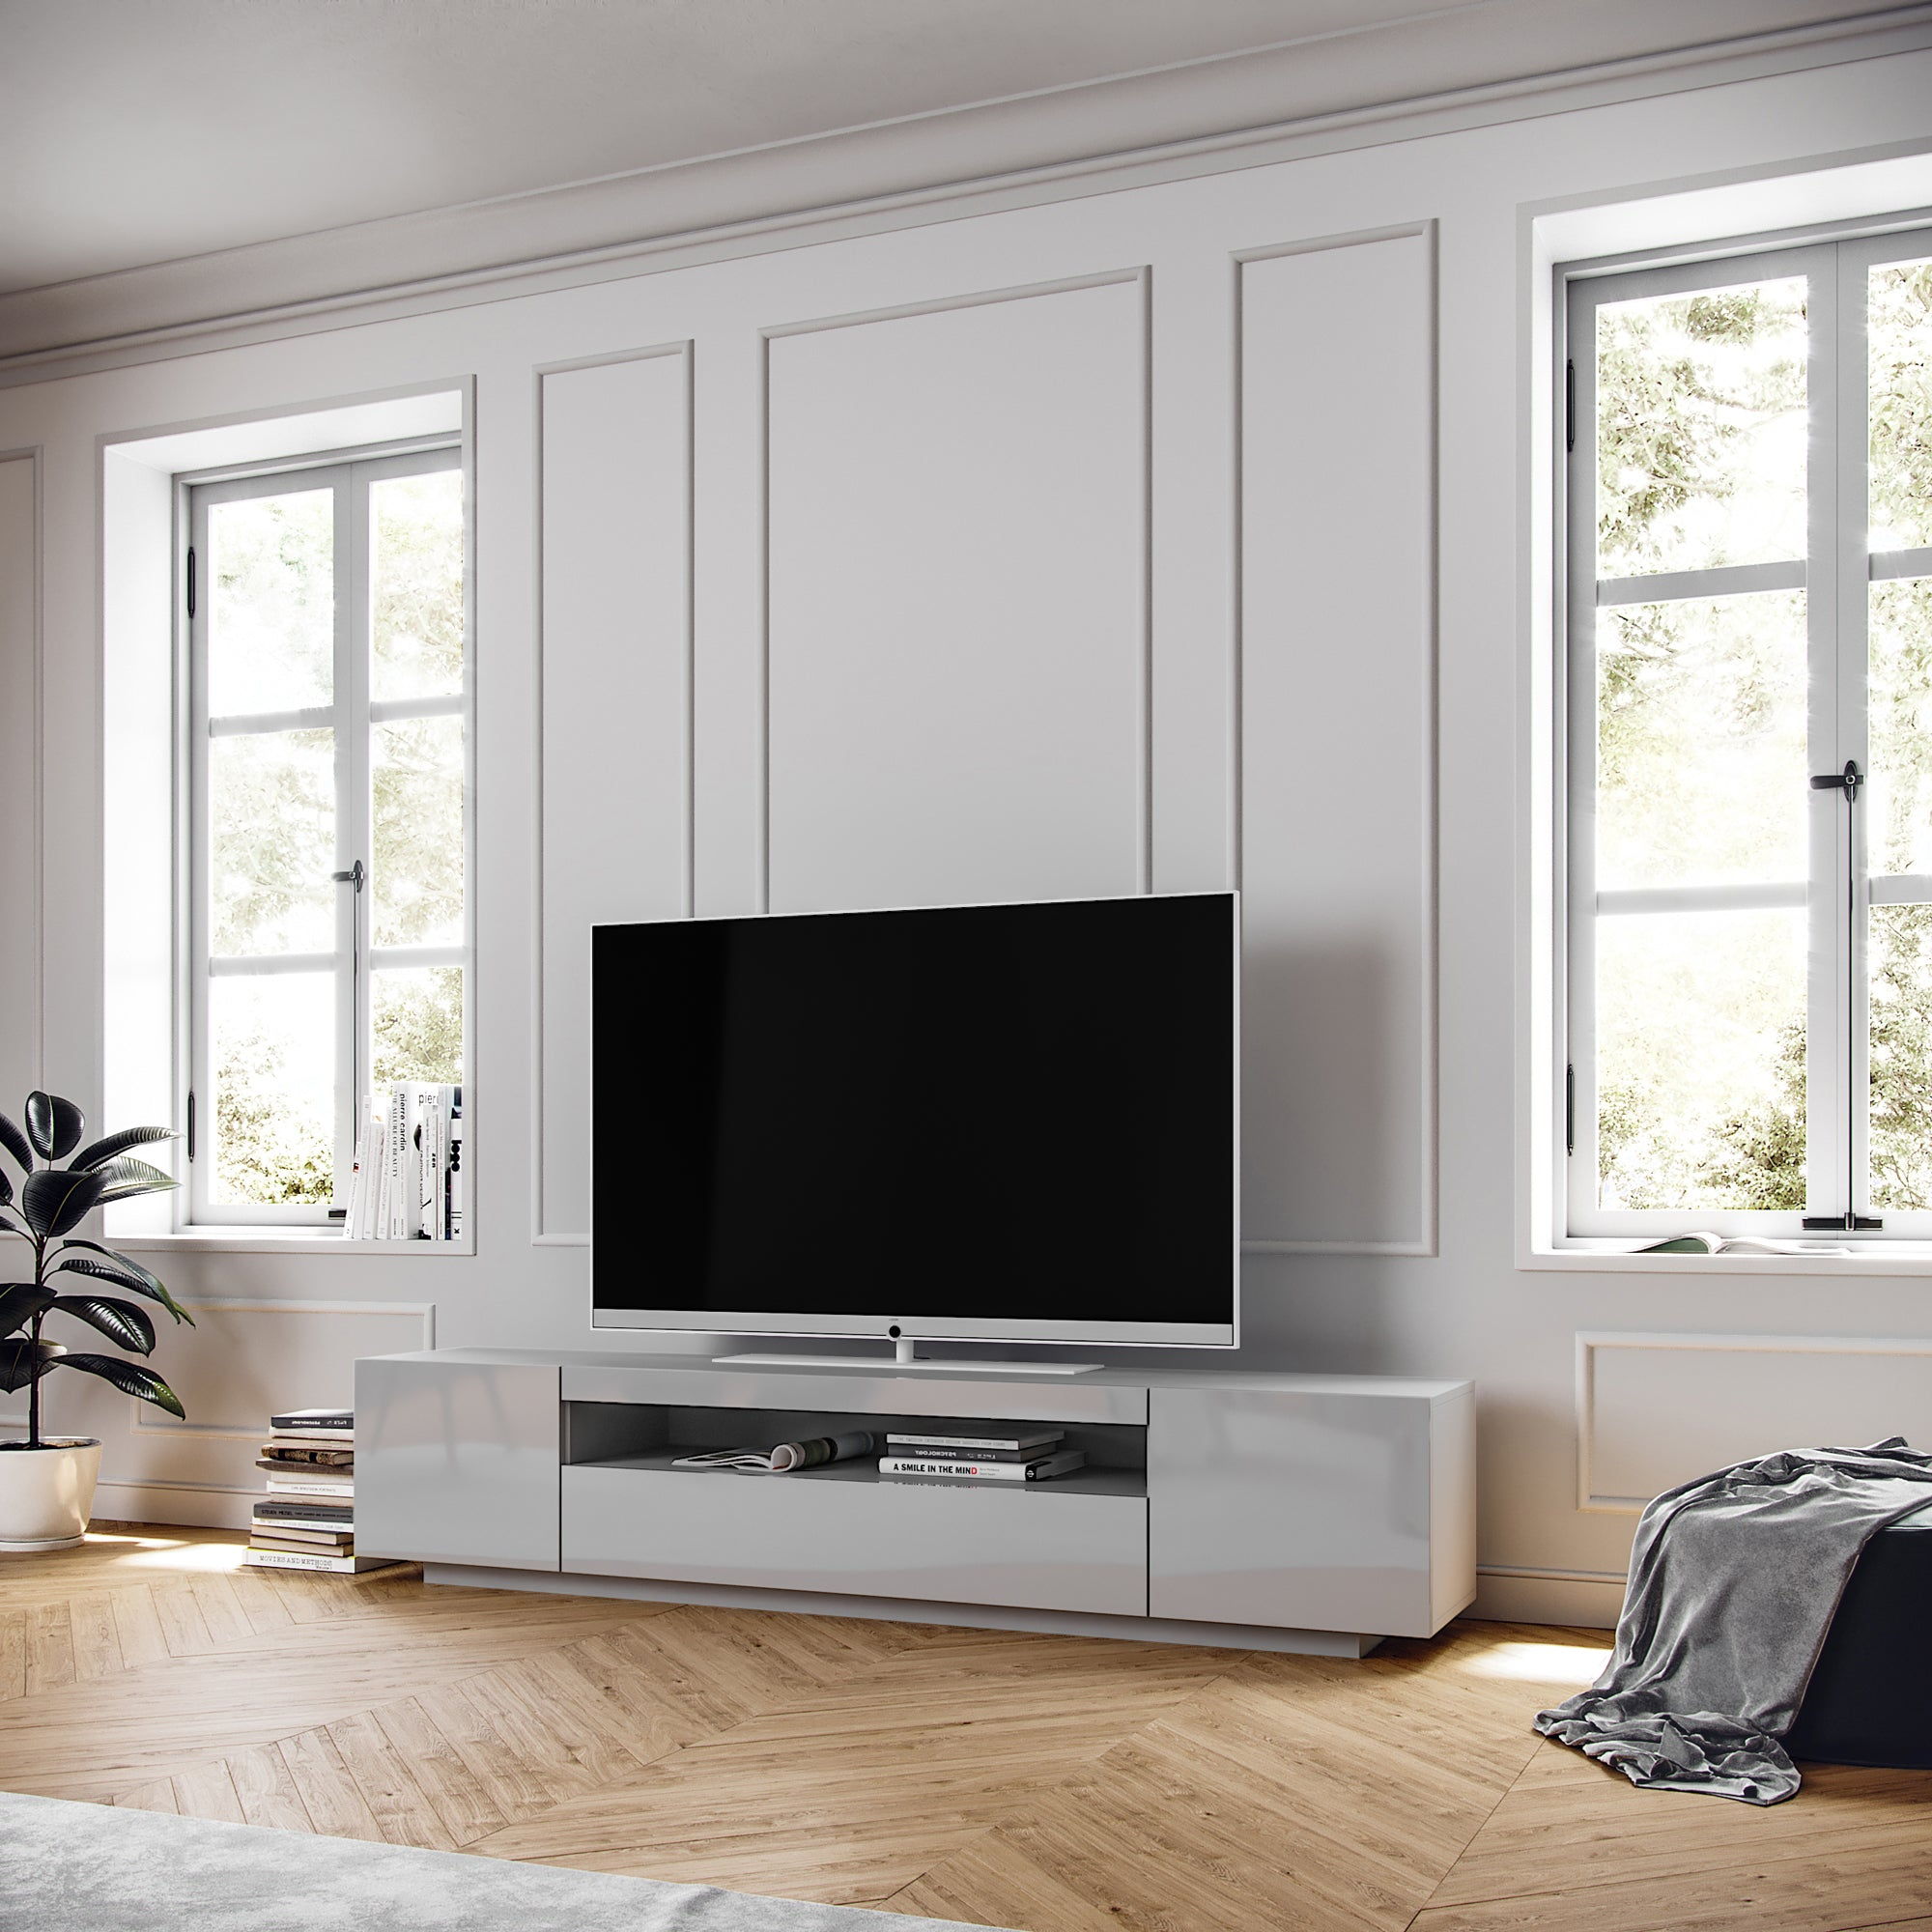 Modern European TV Cabinet, SAMSO Light Grey TV Cabinet